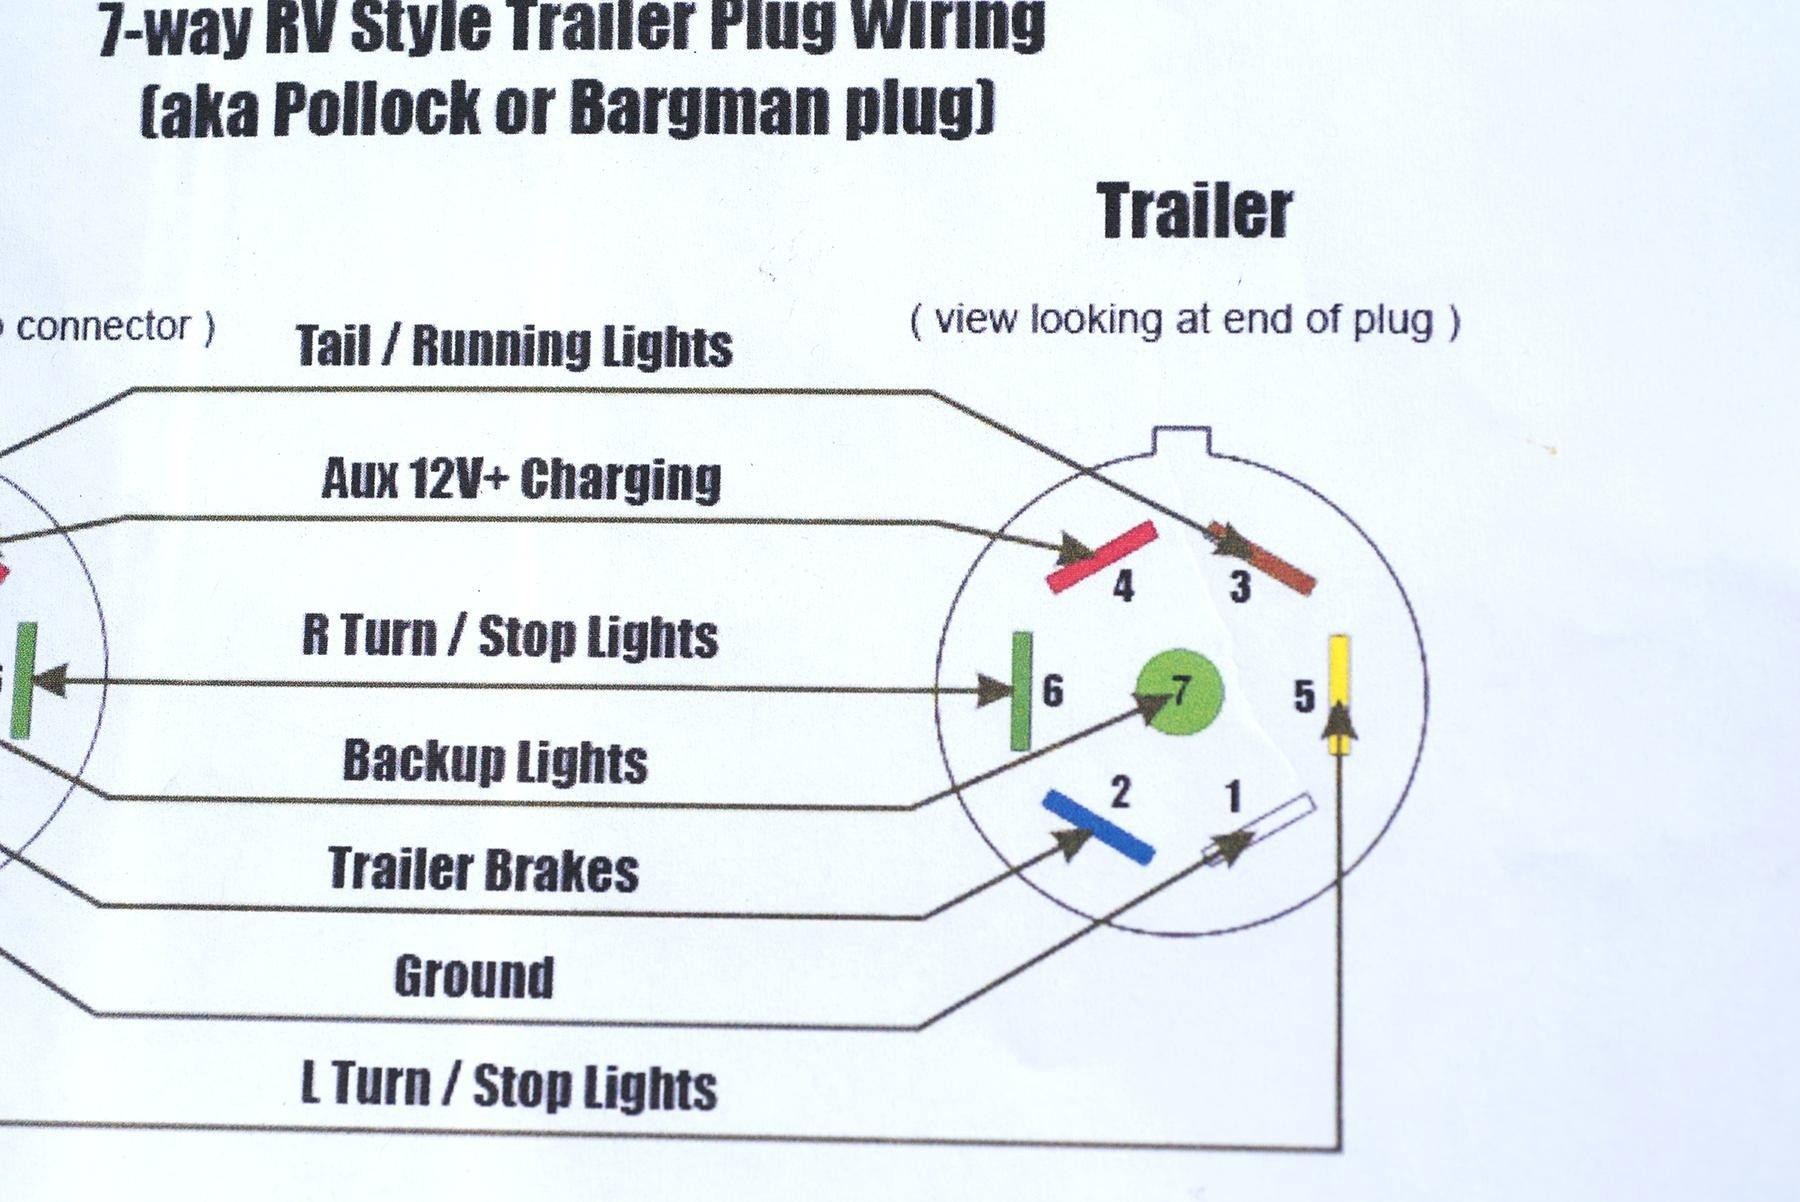 7 Wire Trailer Plug Diagram Rv Trailer Plug Wiring Diagram Download Of 7 Wire Trailer Plug Diagram Wiring Diagram for Rv Plug Save 7 Wire Trailer Plug Diagram New Best